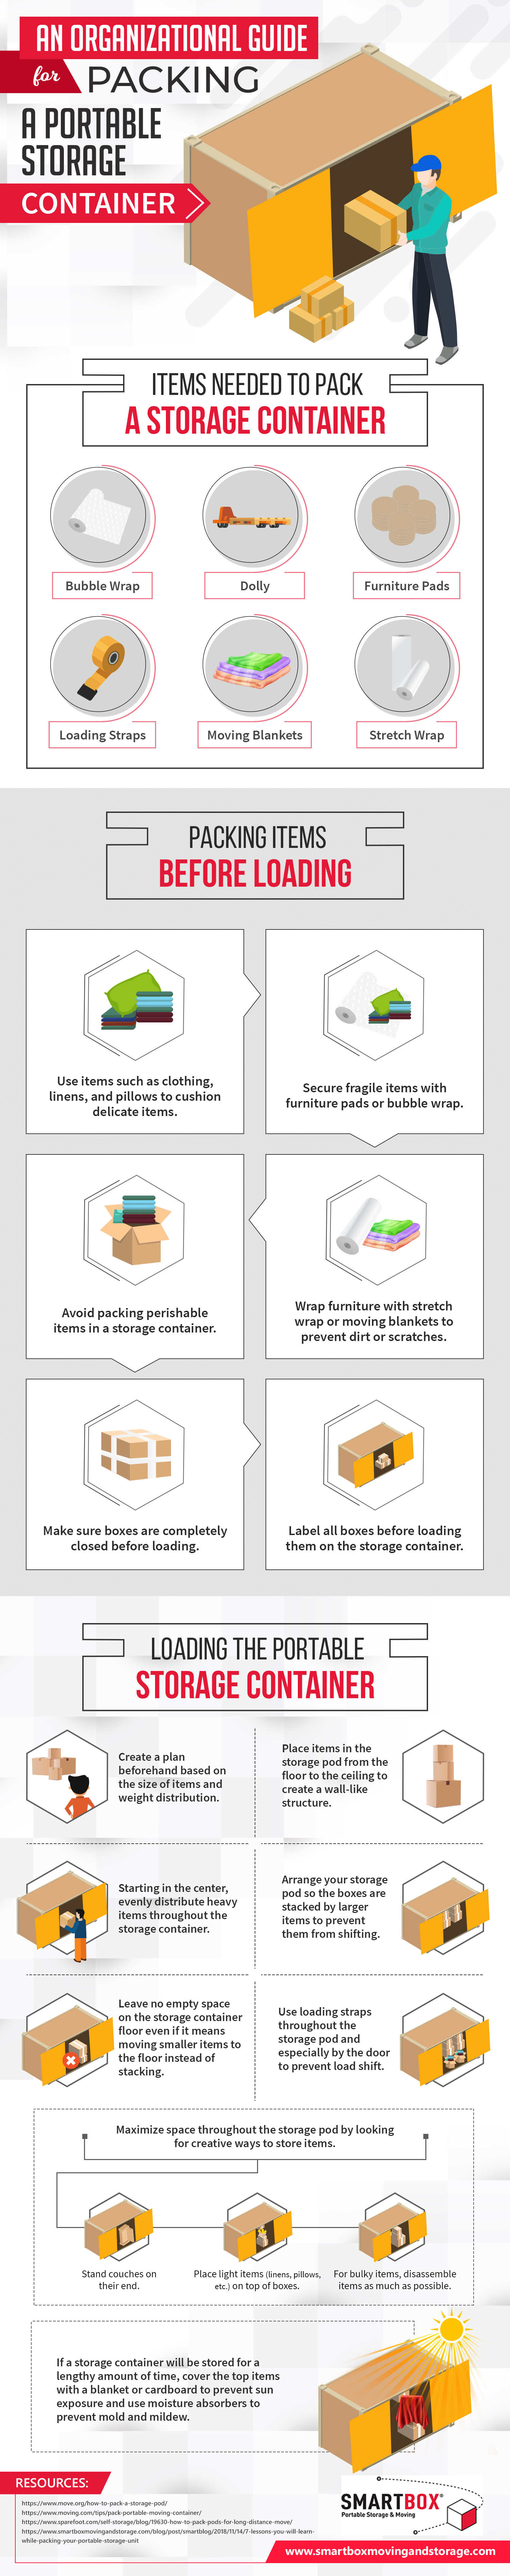 An Organizational Guide for Packing a Portable Storage Container_v1